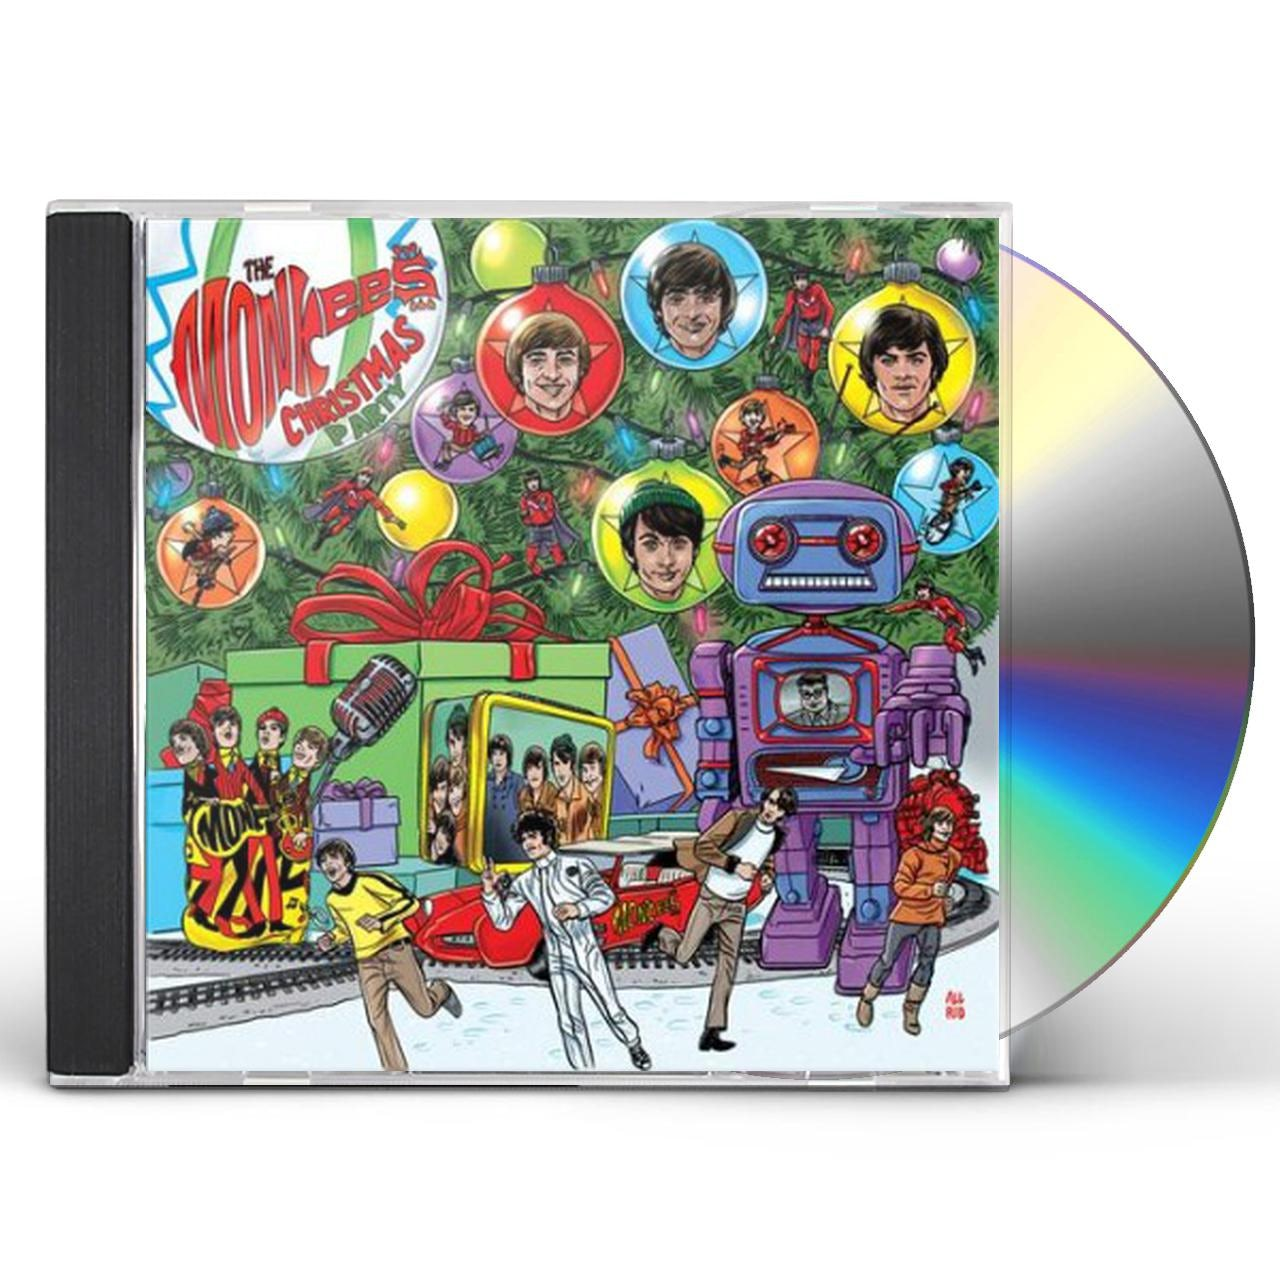 Monkees Christmas Party.The Monkees Christmas Party Cd